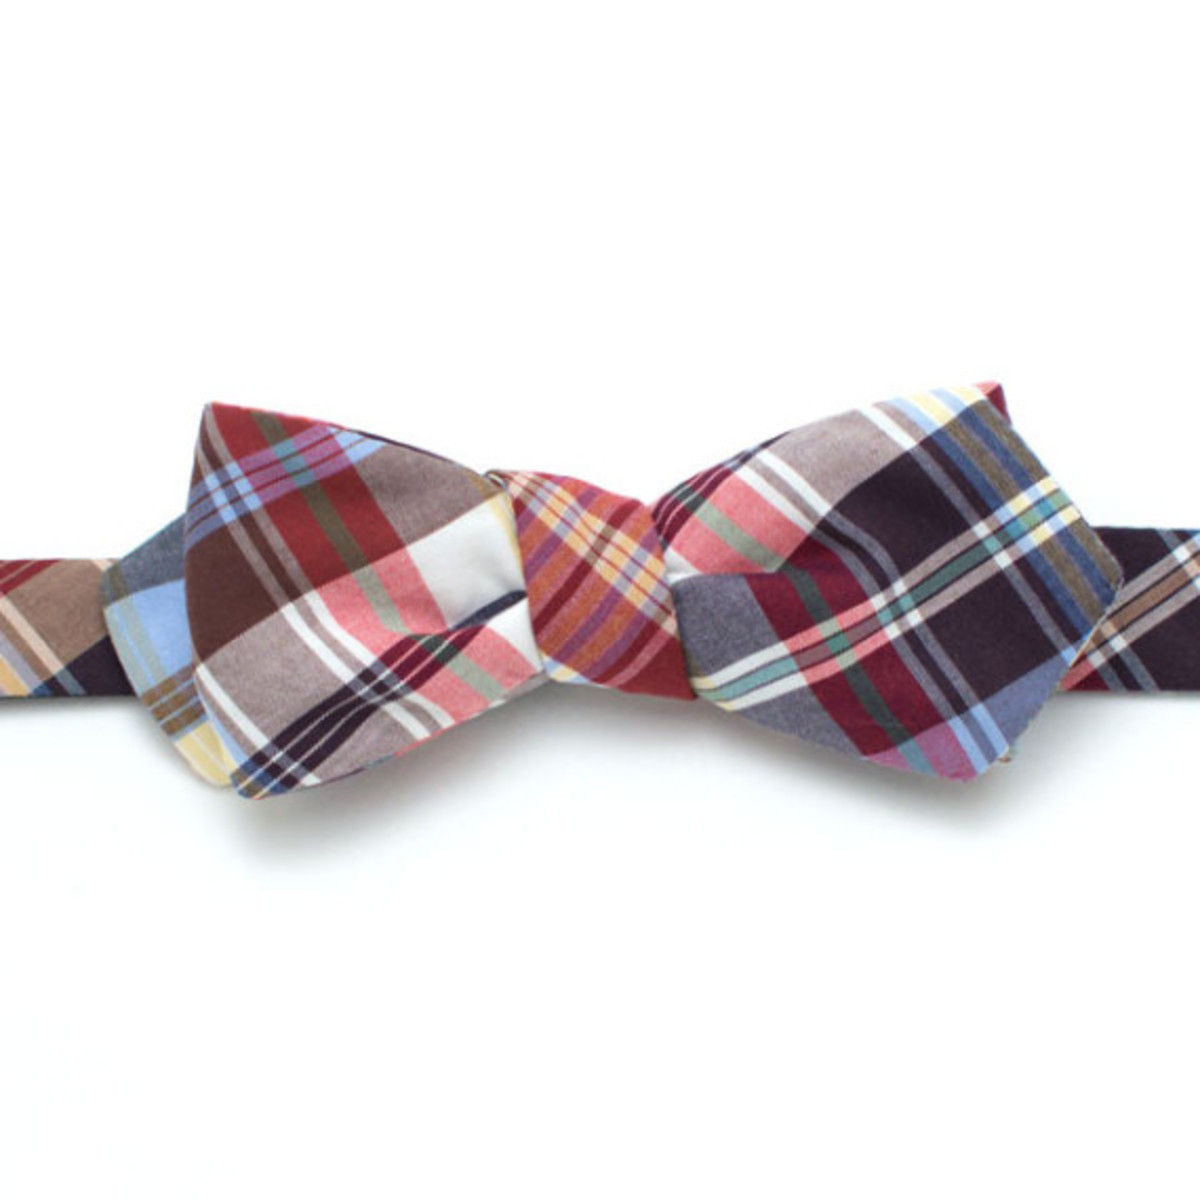 general-knot-and-co-portland-family-neckwear-collection-13